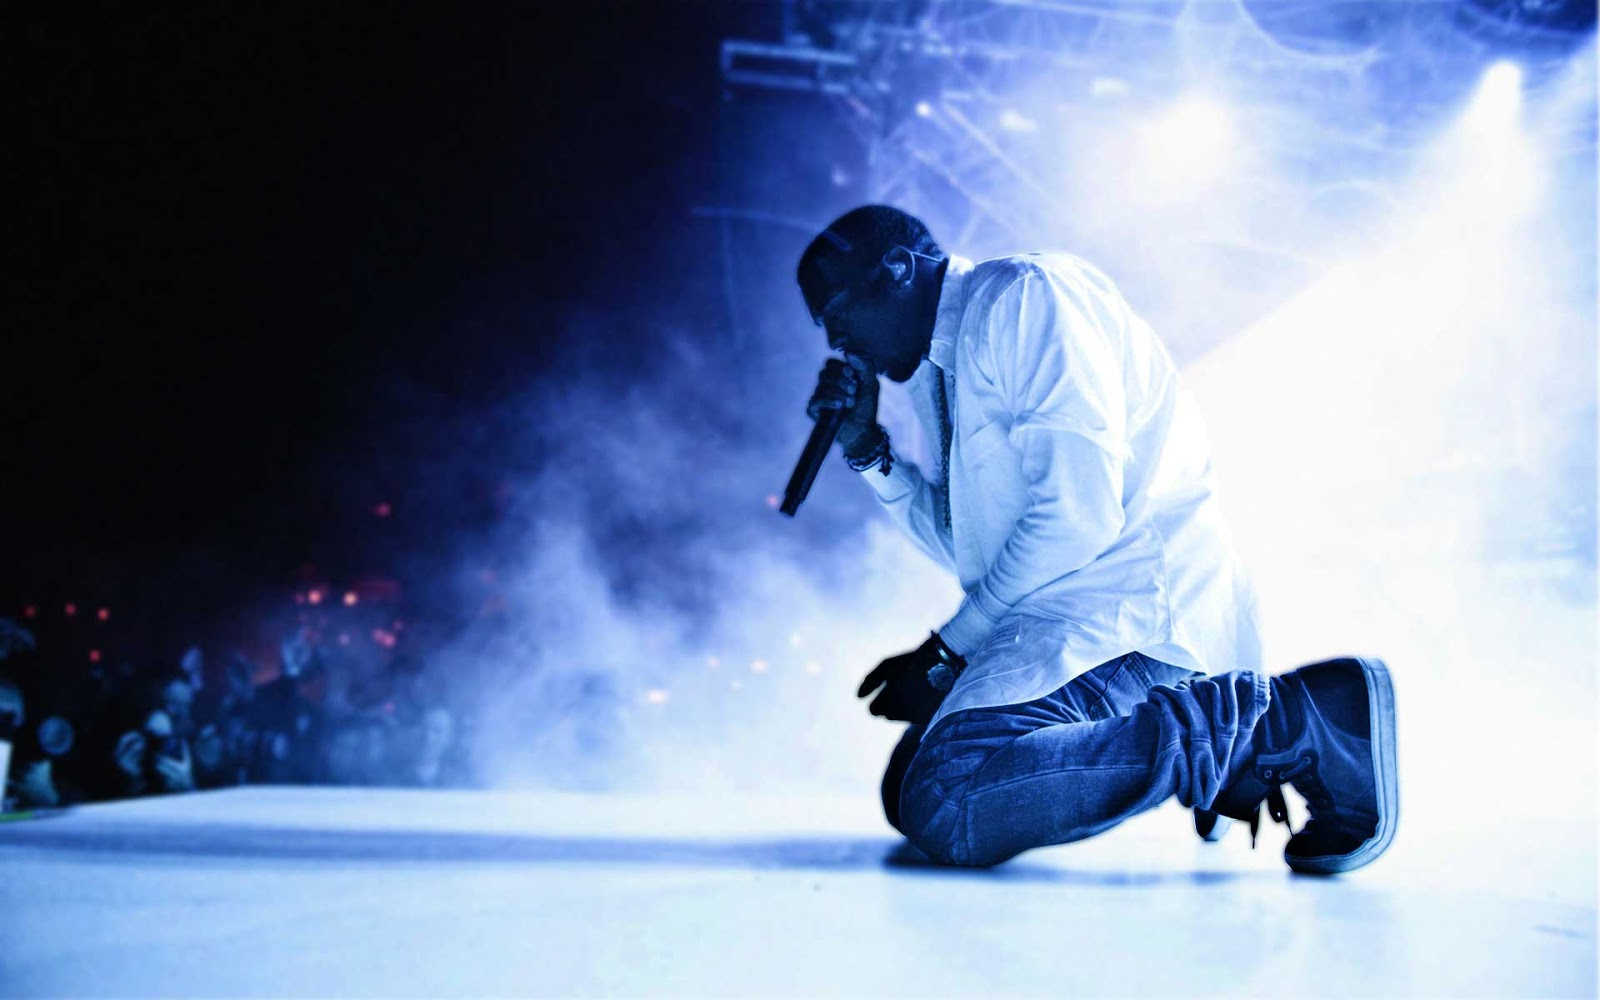 Kanye West Wallpapers 1920x1080 10 Wallpapers Download